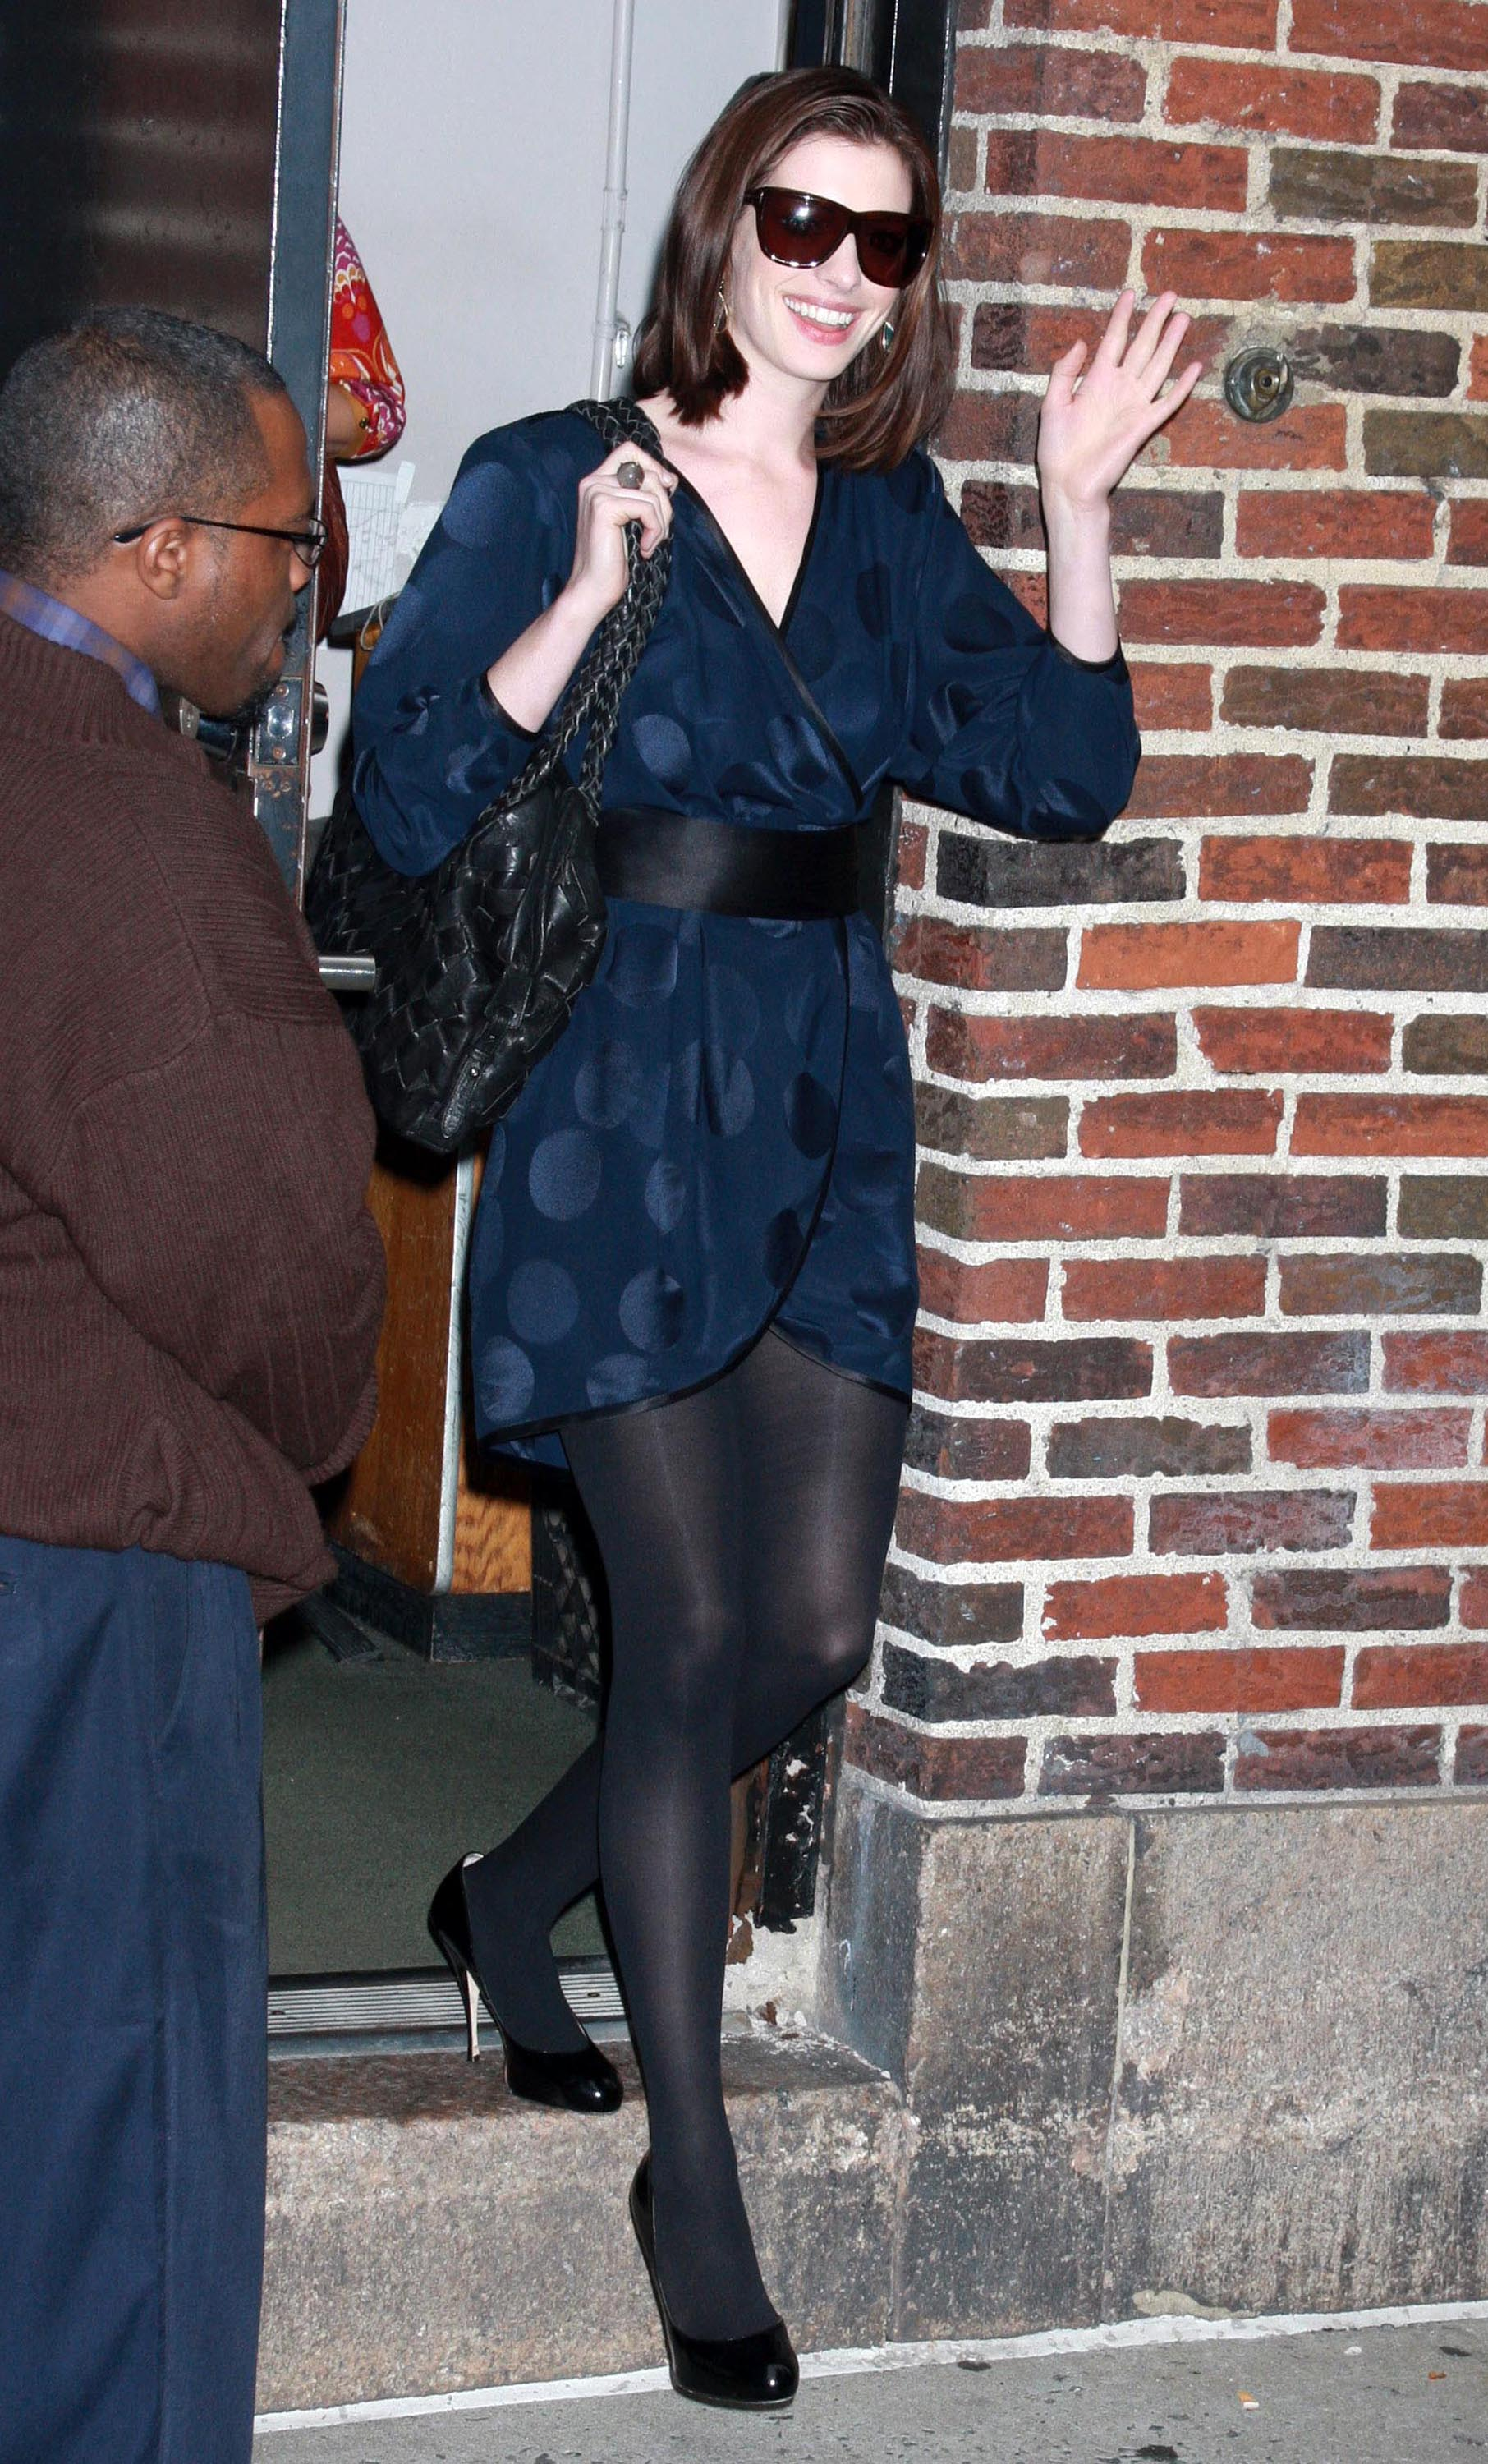 47287_Anne_Hathaway_2008-09-30_-_visits_the_Late_Show_with_David_Letterman_1182_122_943lo.jpg